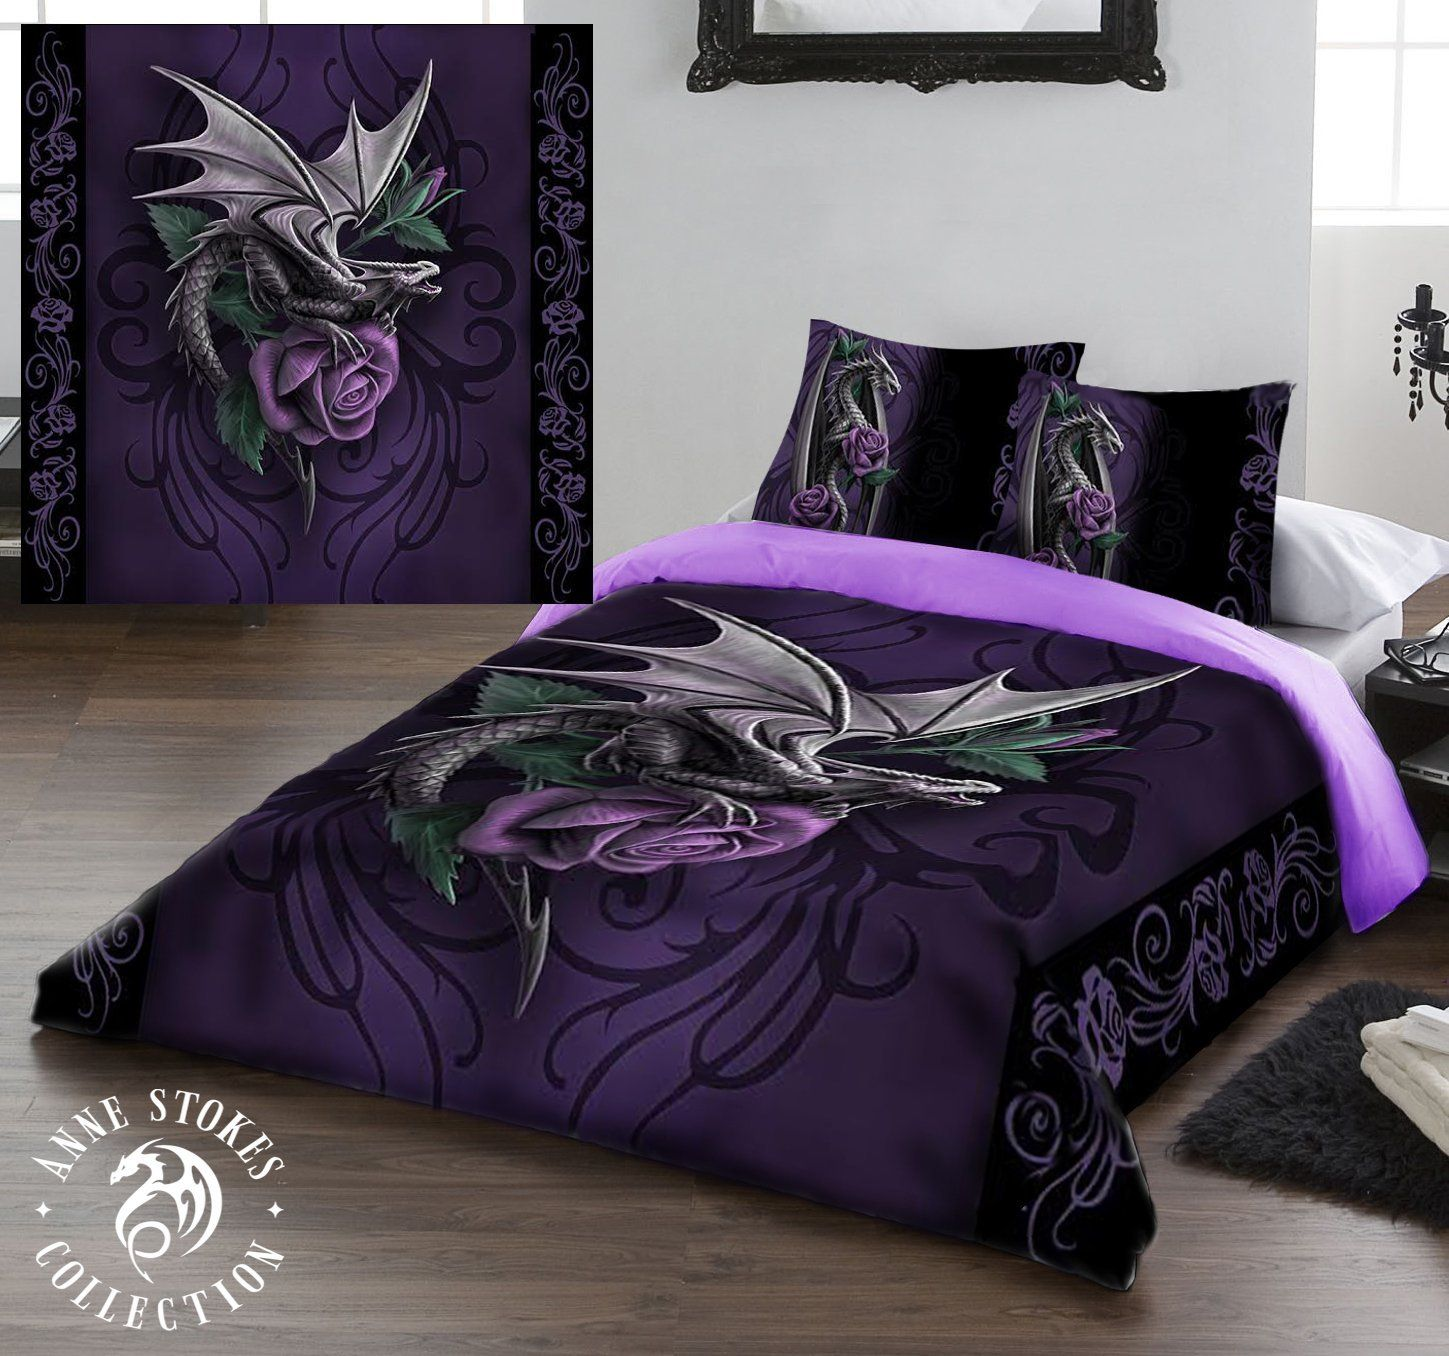 Black and purple bed sheets - Bedding Purple Dragon Bedding Queensize